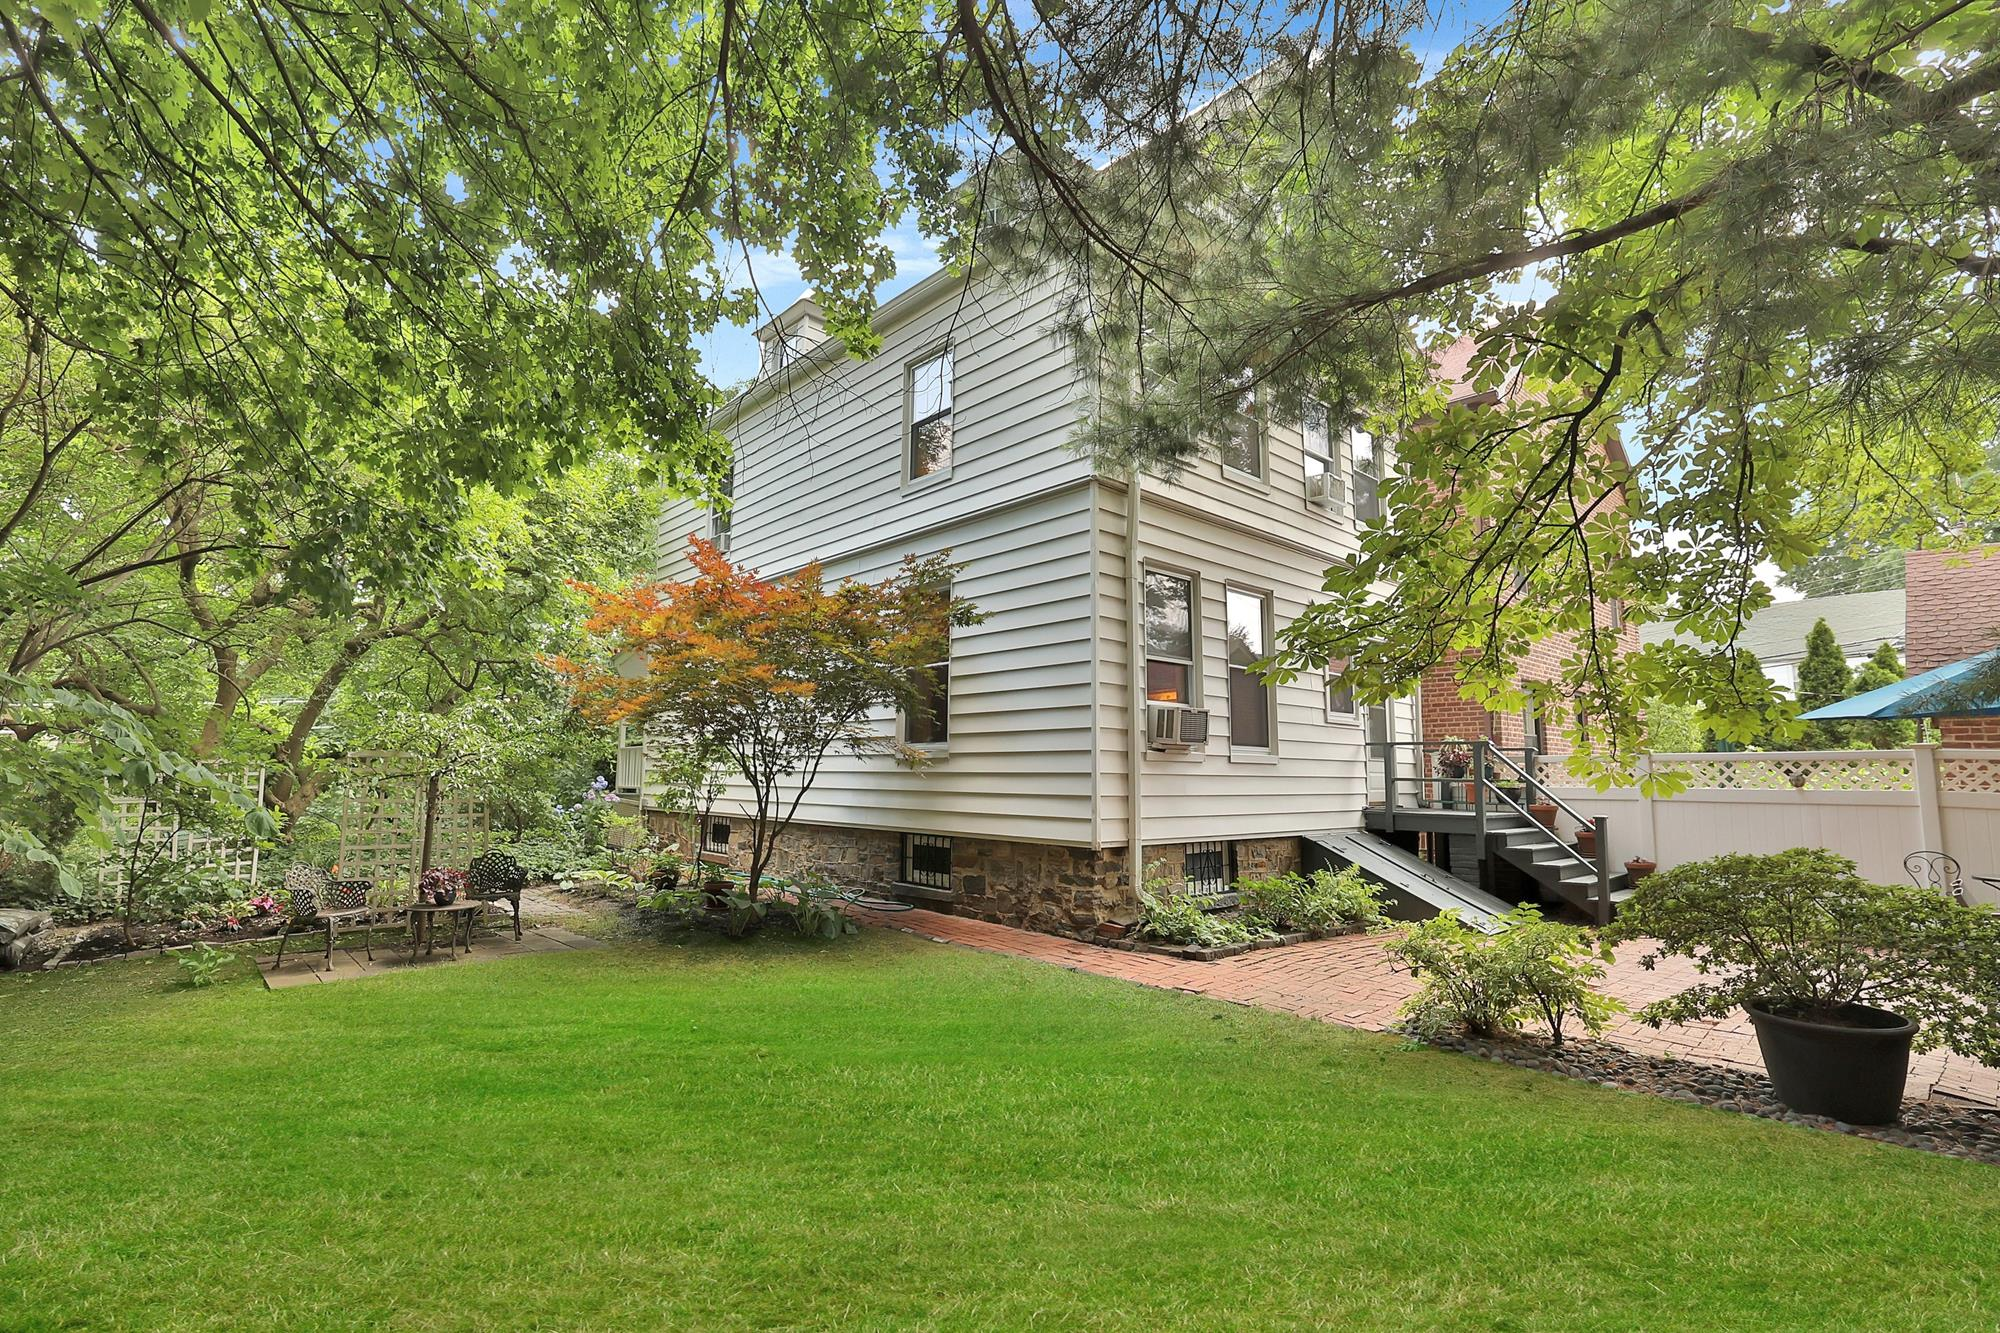 Charming 6-Bd. House on Double Lot with Lovely Side & Back Yards, Patio & Garden